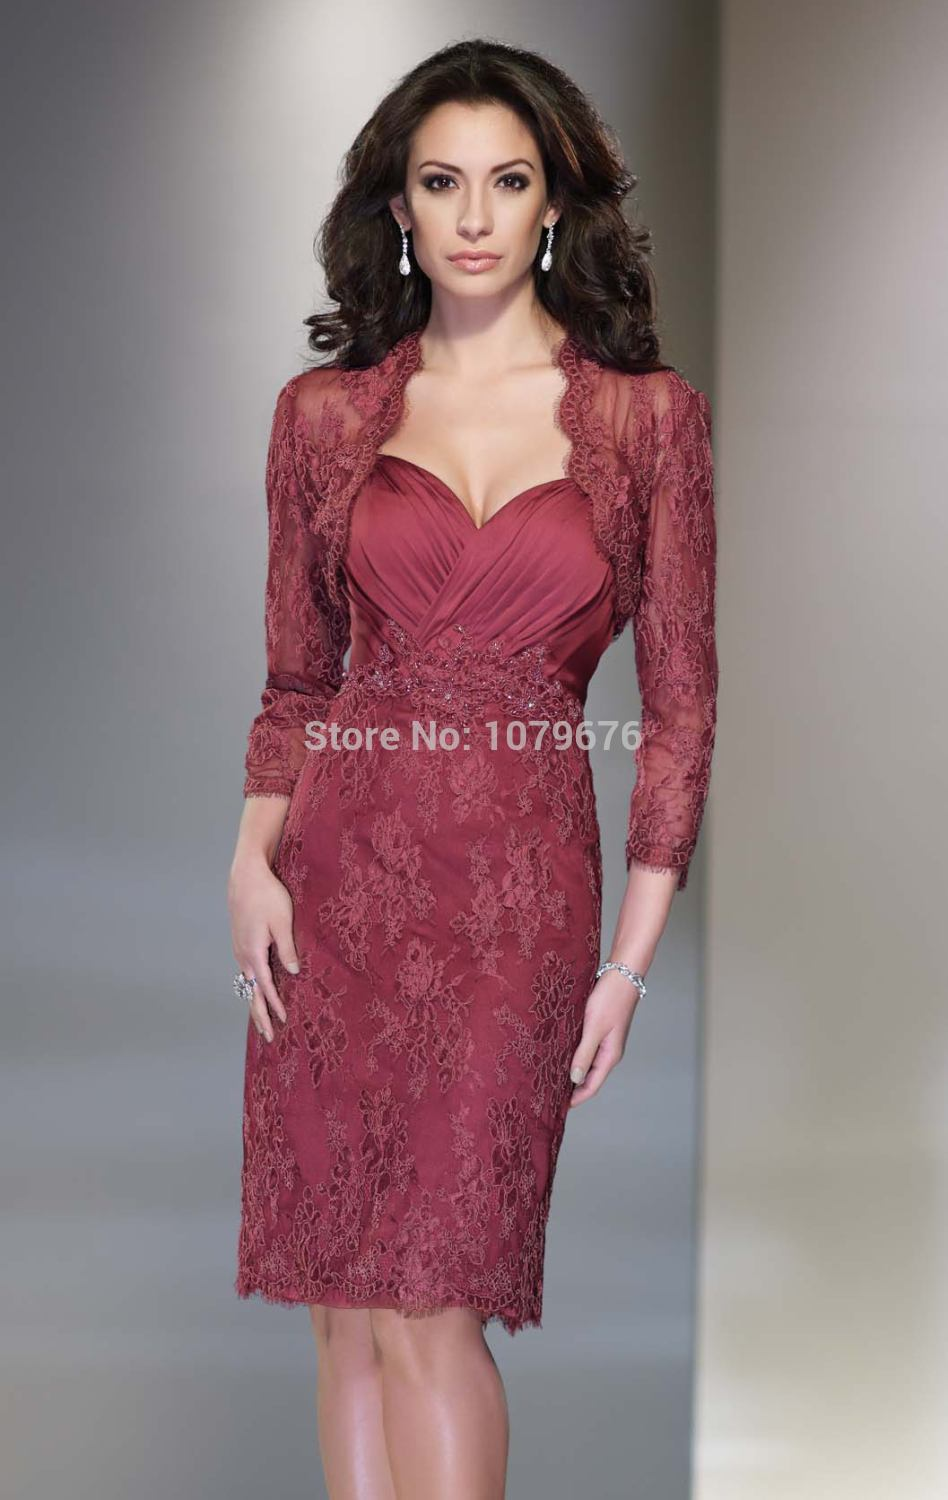 0e676def3db22 Hot Sale Burgundy Modern Lace Beaded Mother of the Bride Dress With Jacket  Knee-Length Short Mother of the Bride Pant Suits